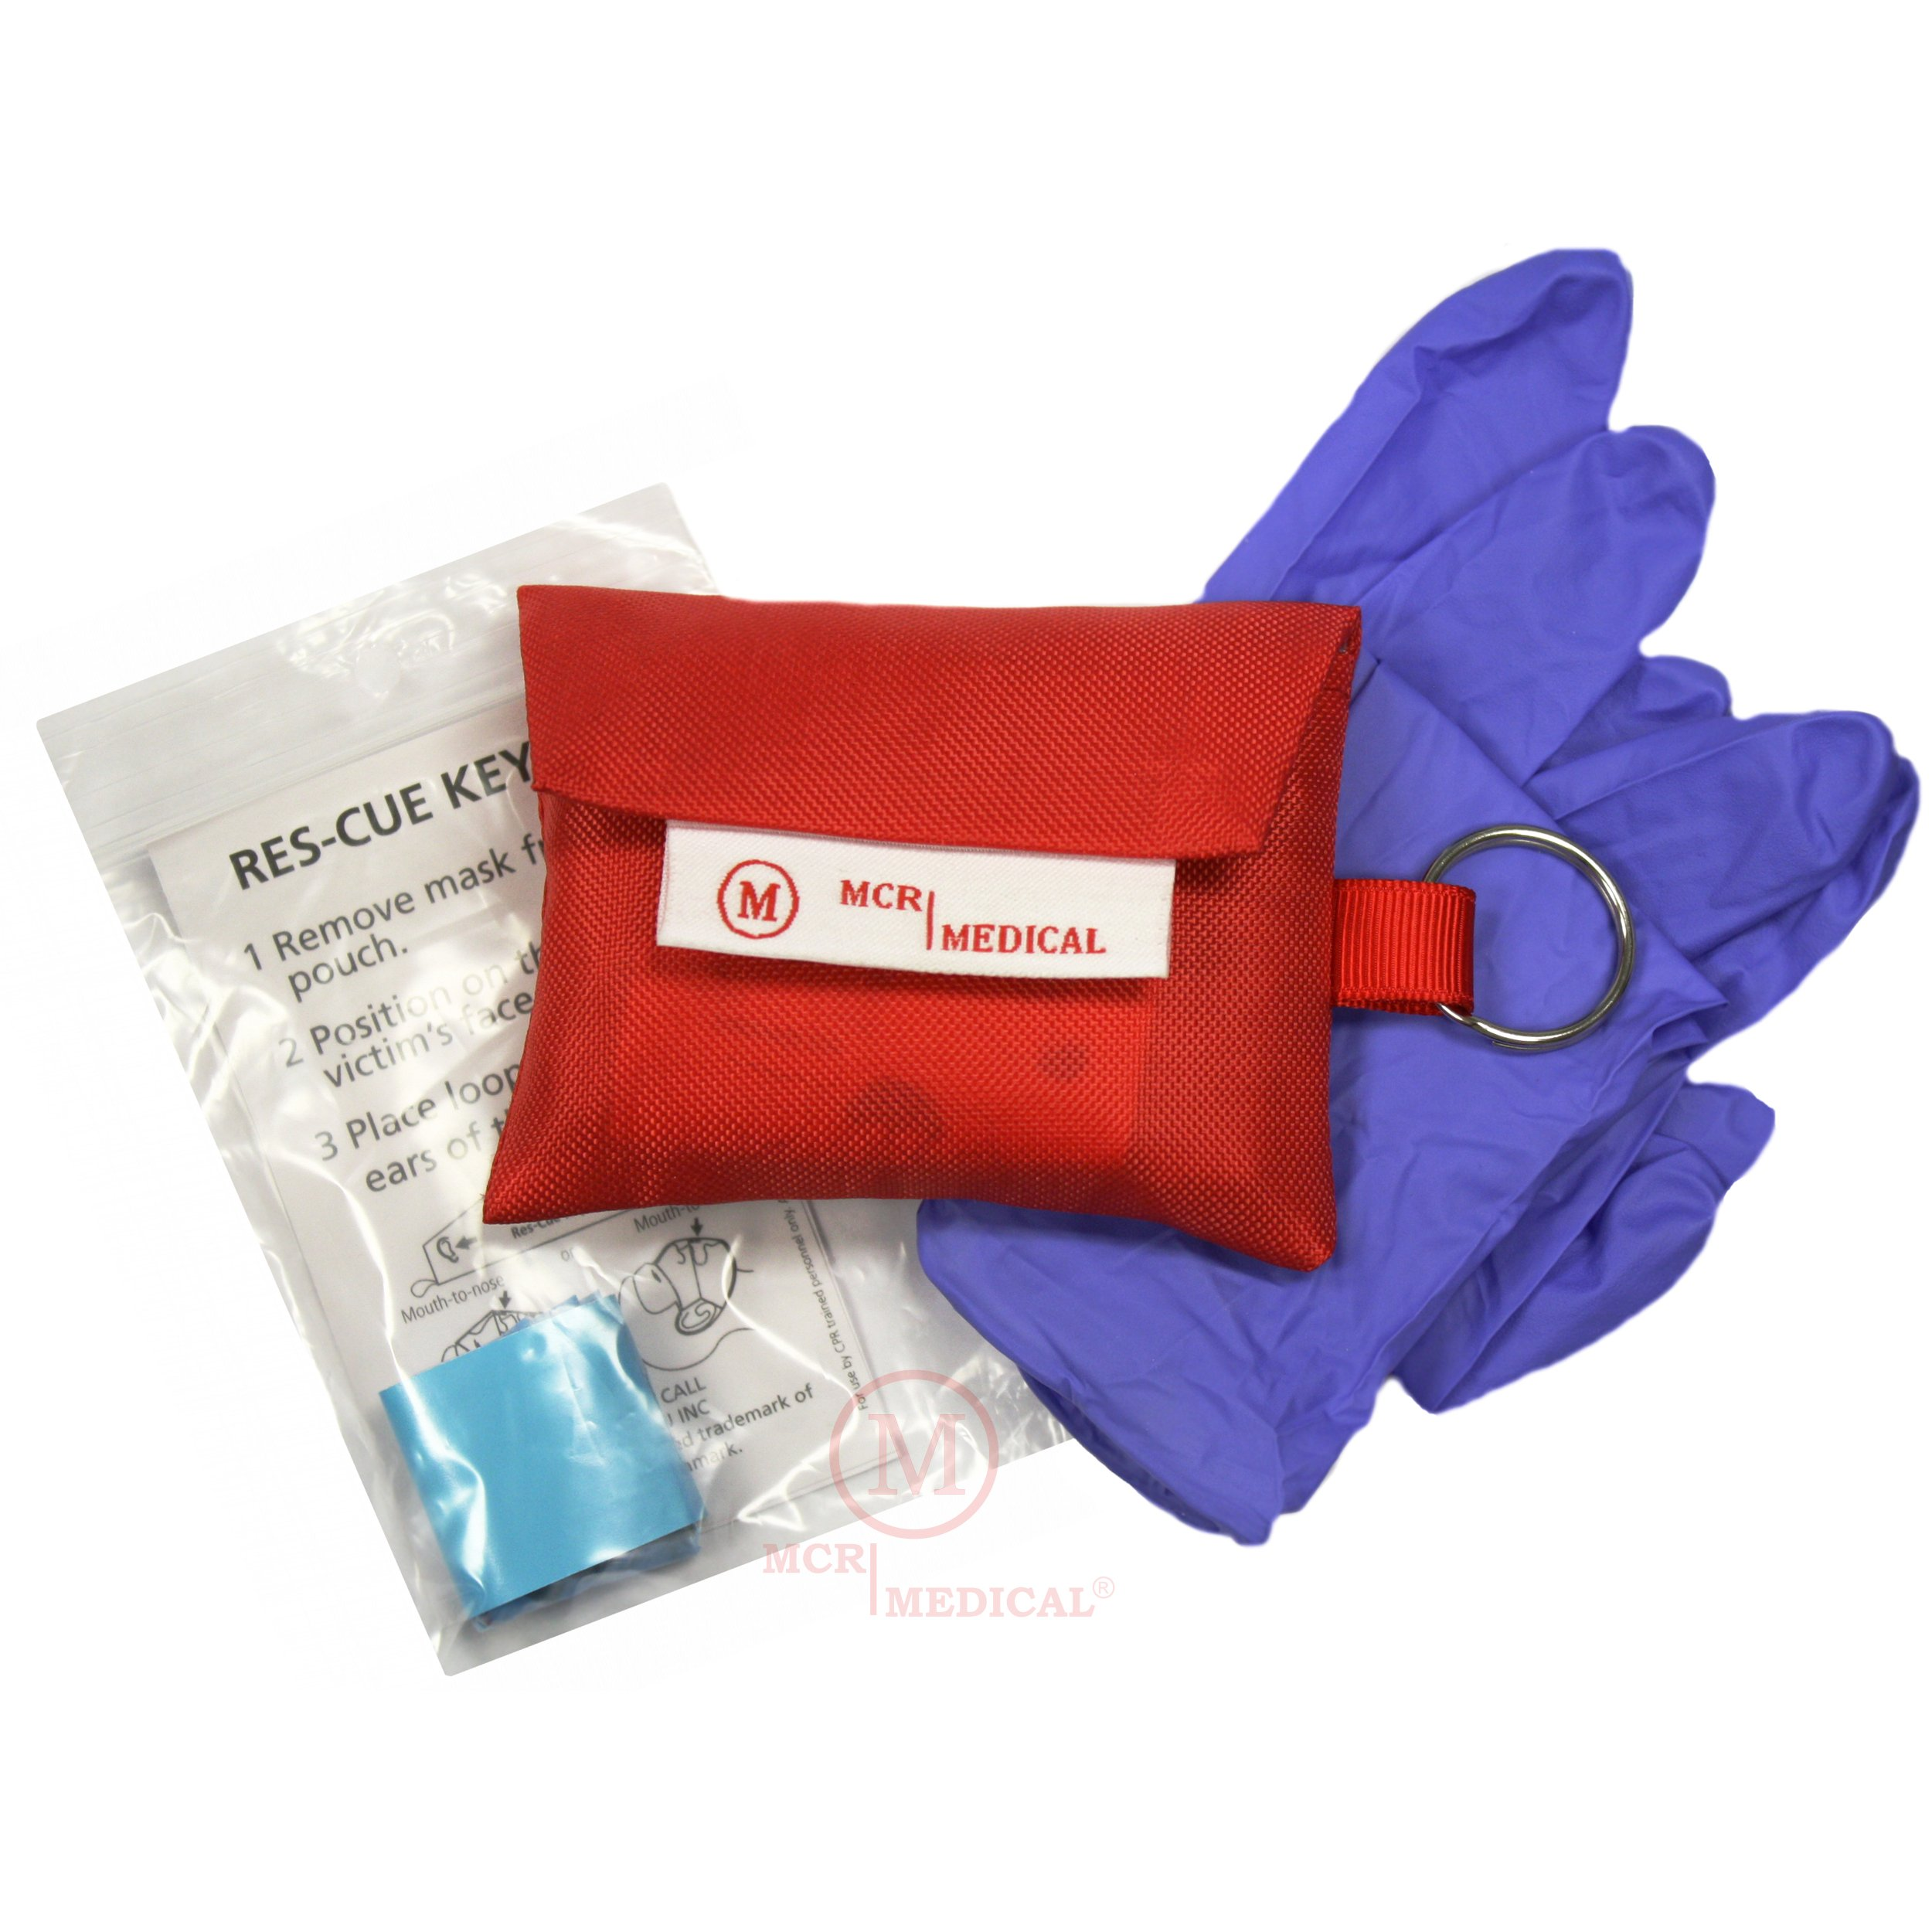 CPR Mask Keychain with Nitrile Gloves (Pack of 10), MCR Medical